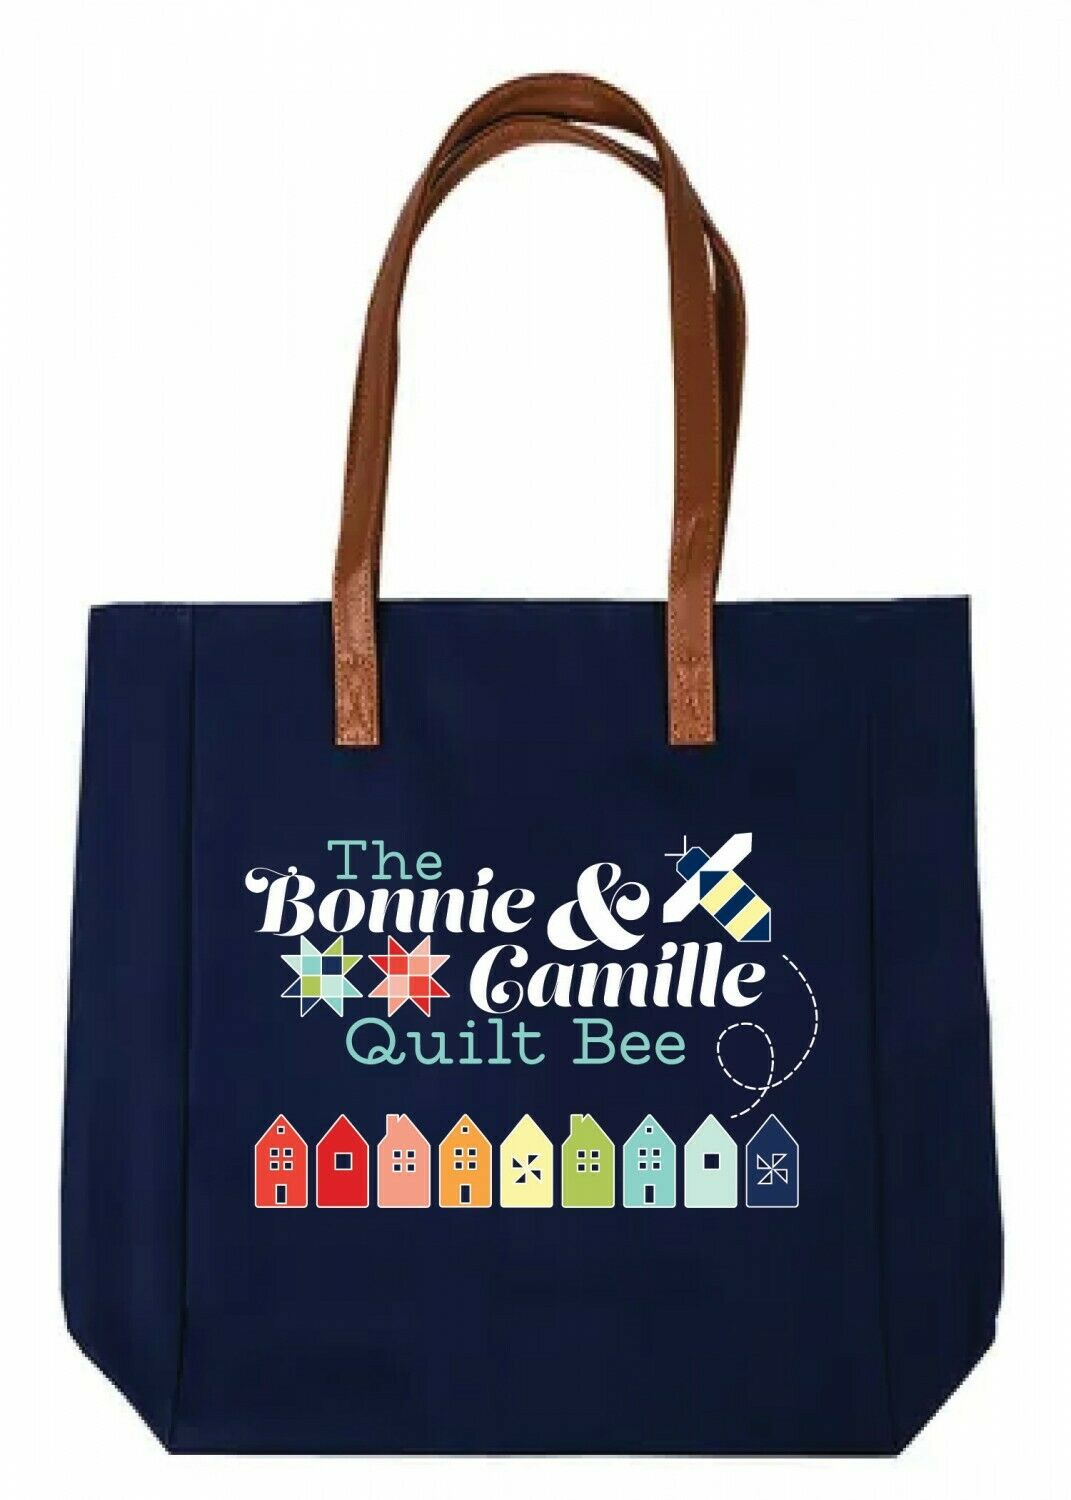 QUILT BEE TOTE BAG by Bonnie & Camille